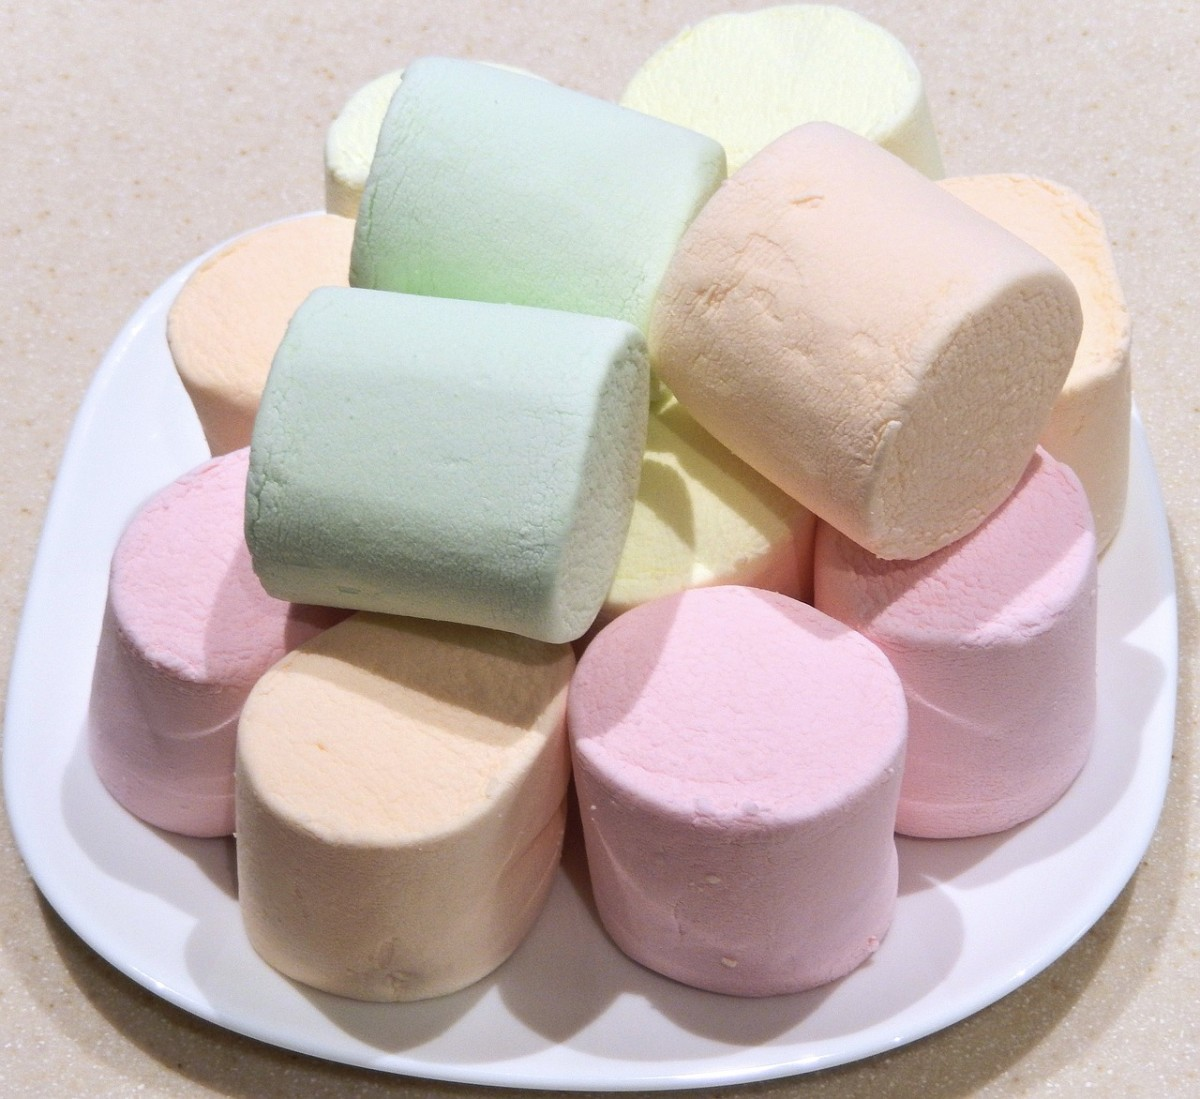 You can use items around the house like marshmallows to teach math to toddlers and preschoolers